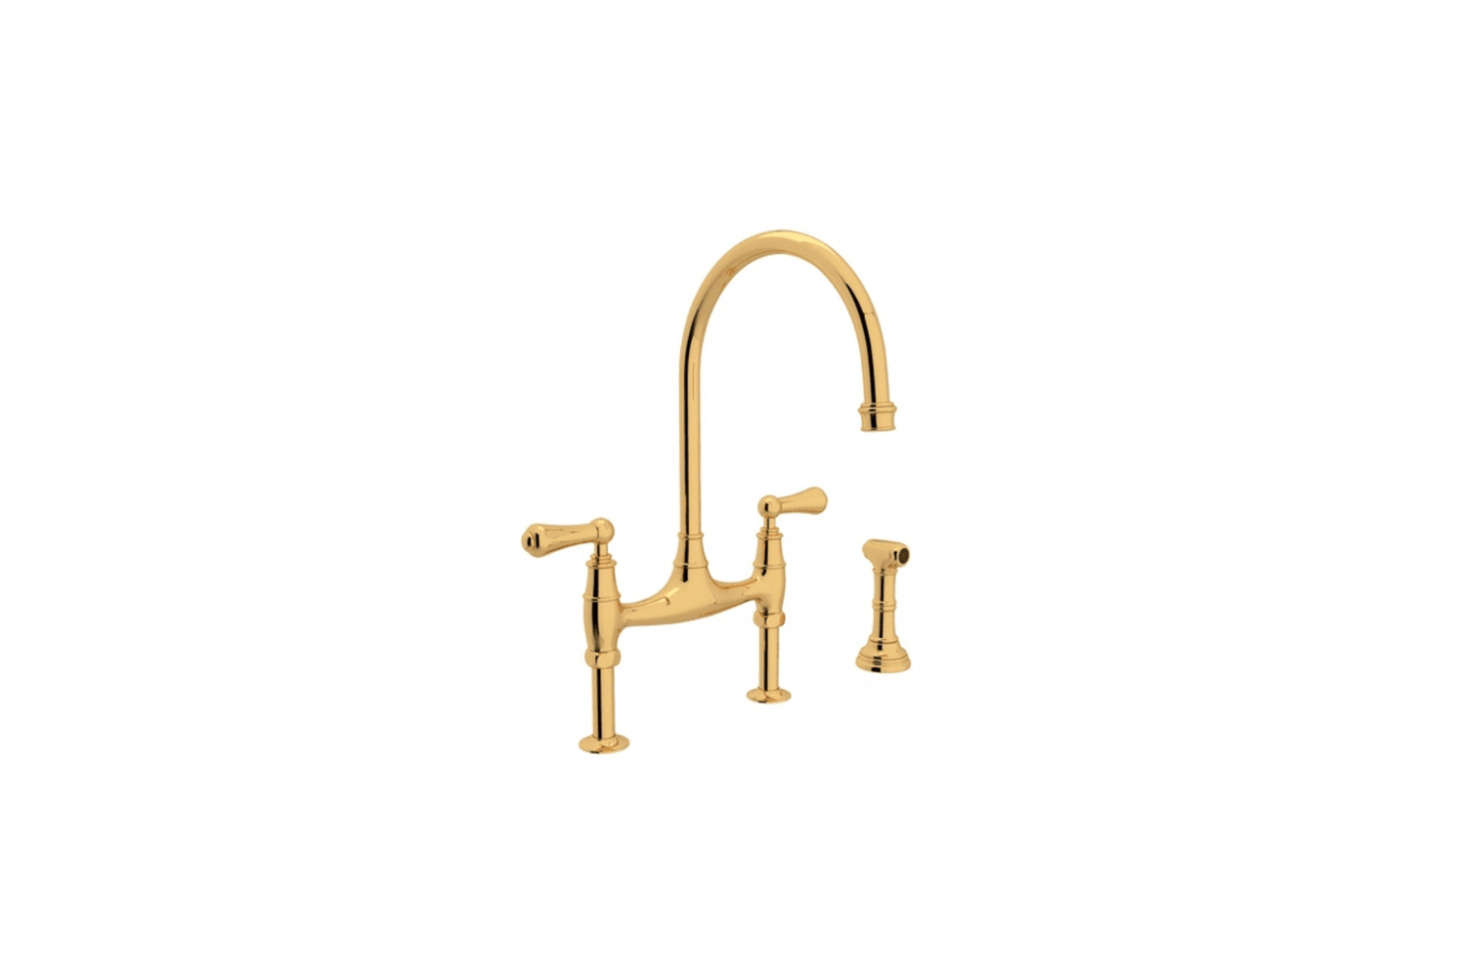 The brass bridge faucet is a Plain English reclamation yard special. For something similar the Rohl Unlacquered Brass Bridge Faucet is $src=